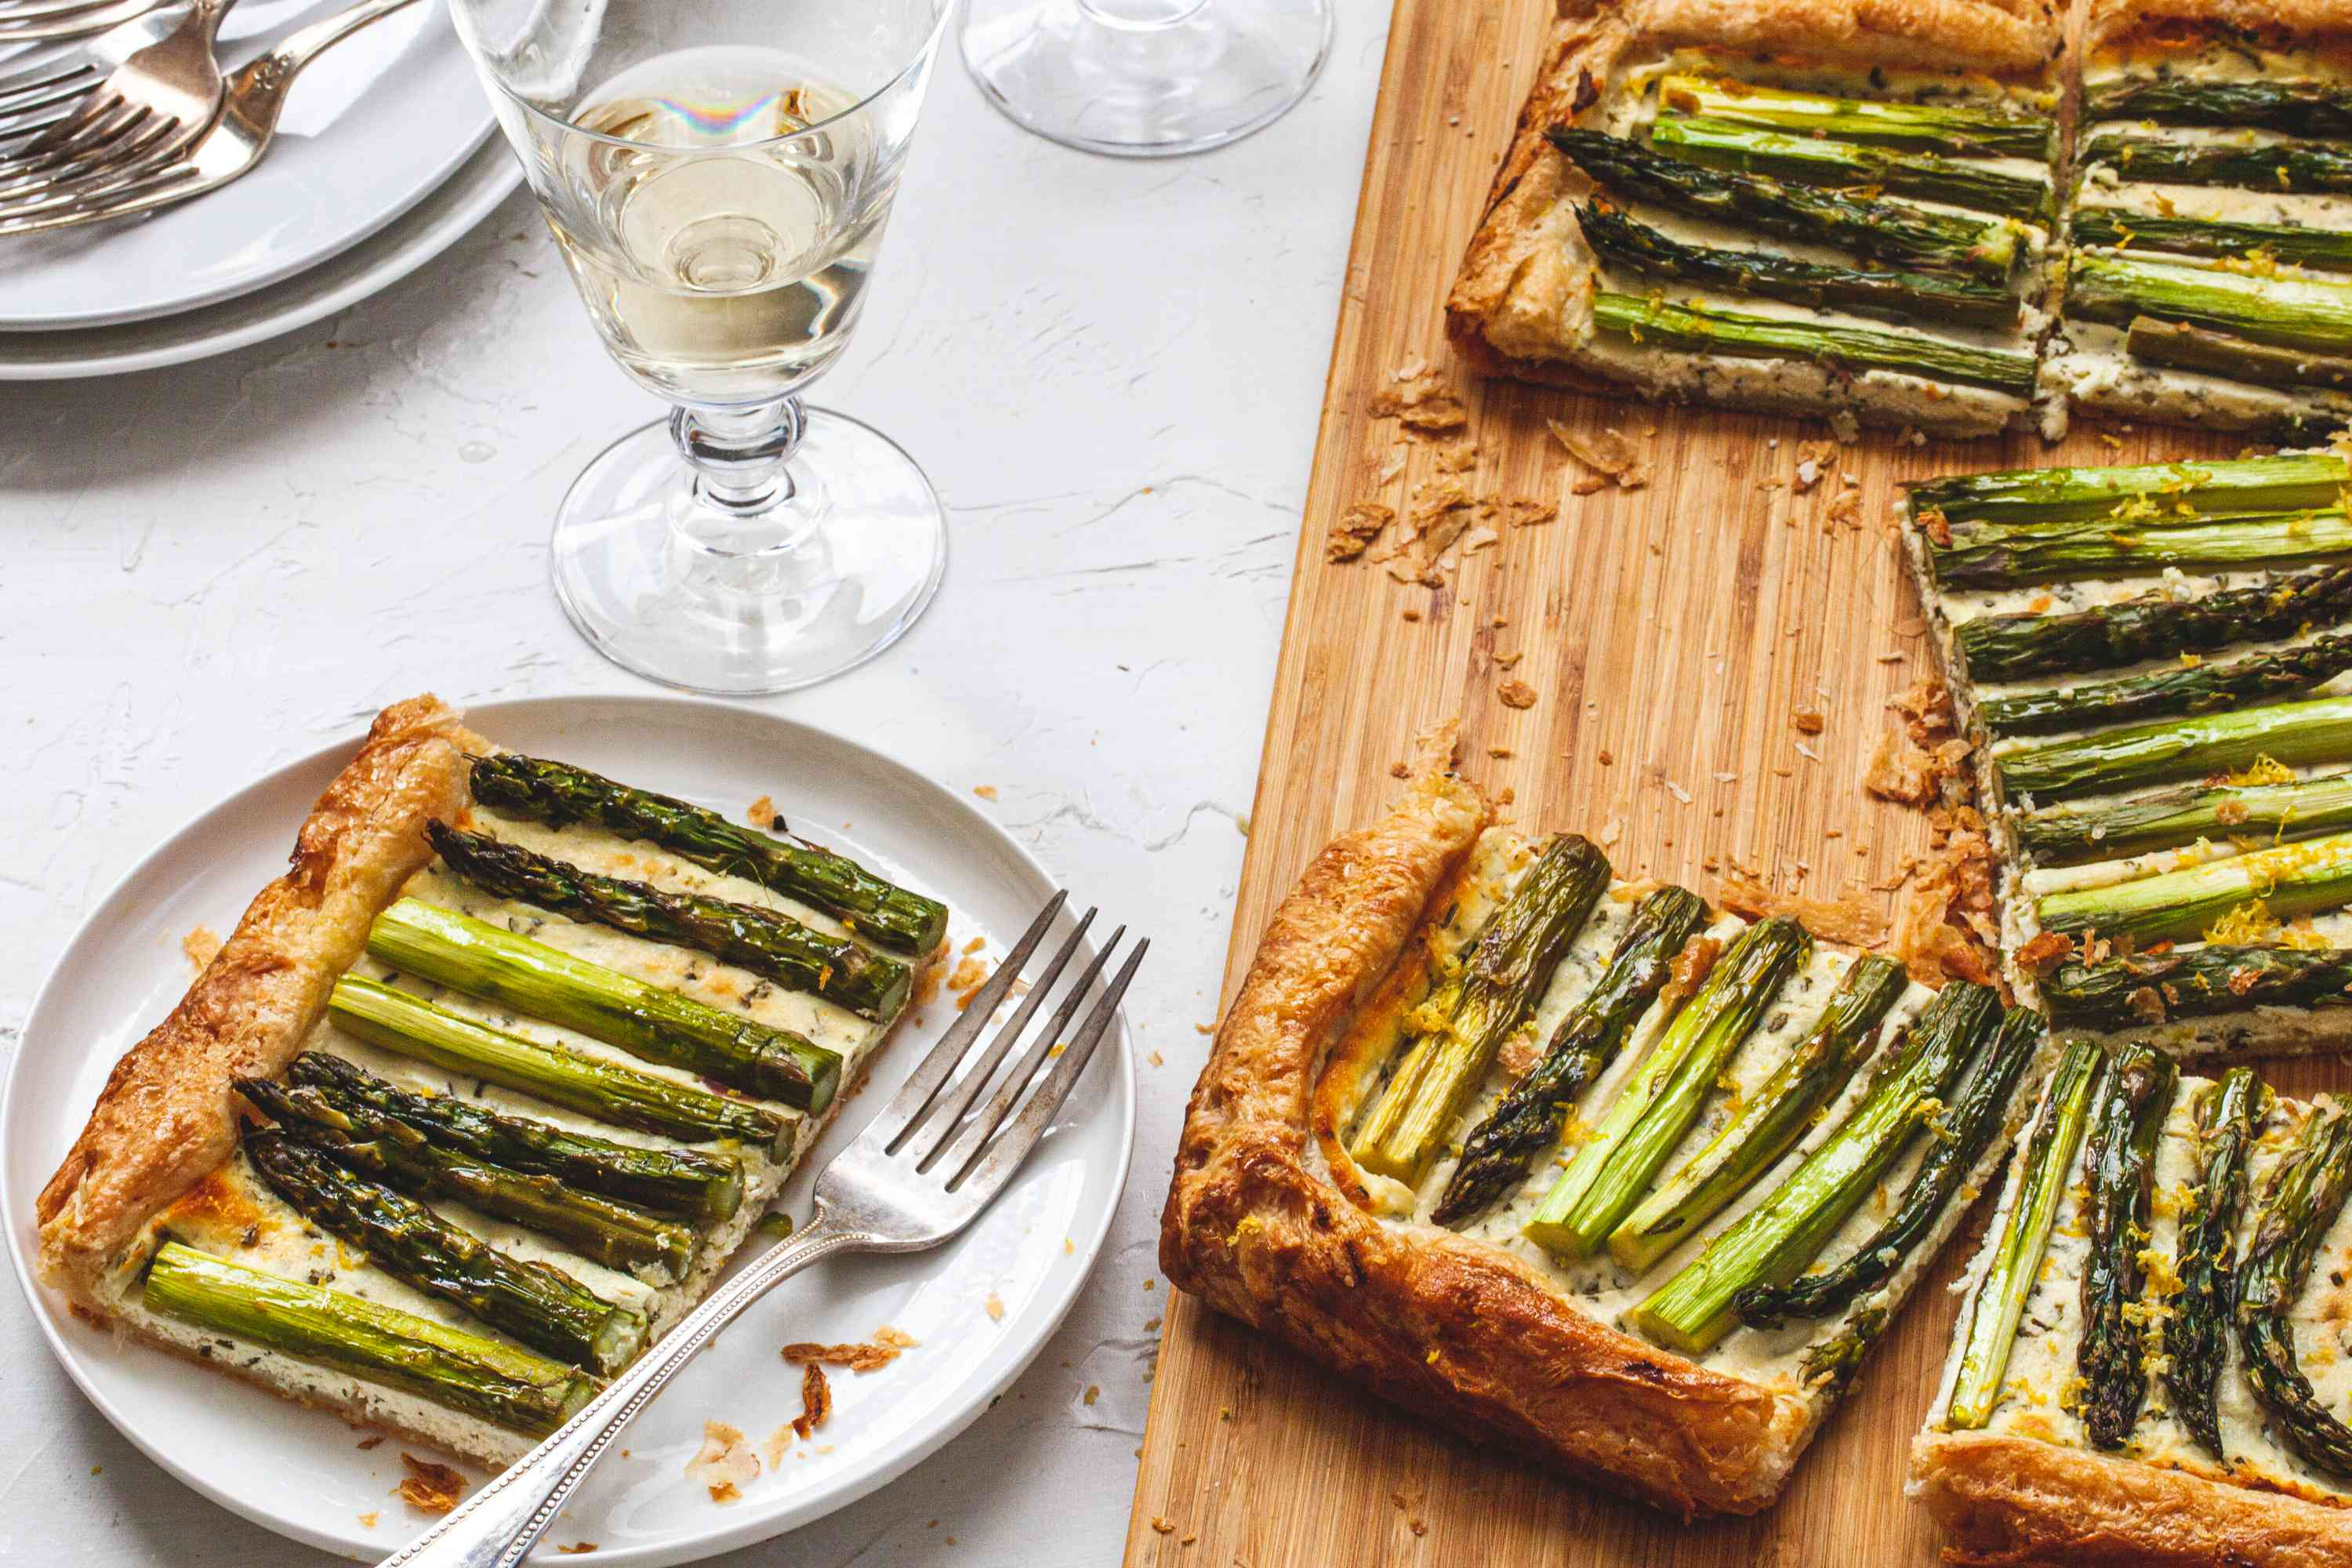 Easy Asparagus Tart on a cutting board and a piece served on a plate.